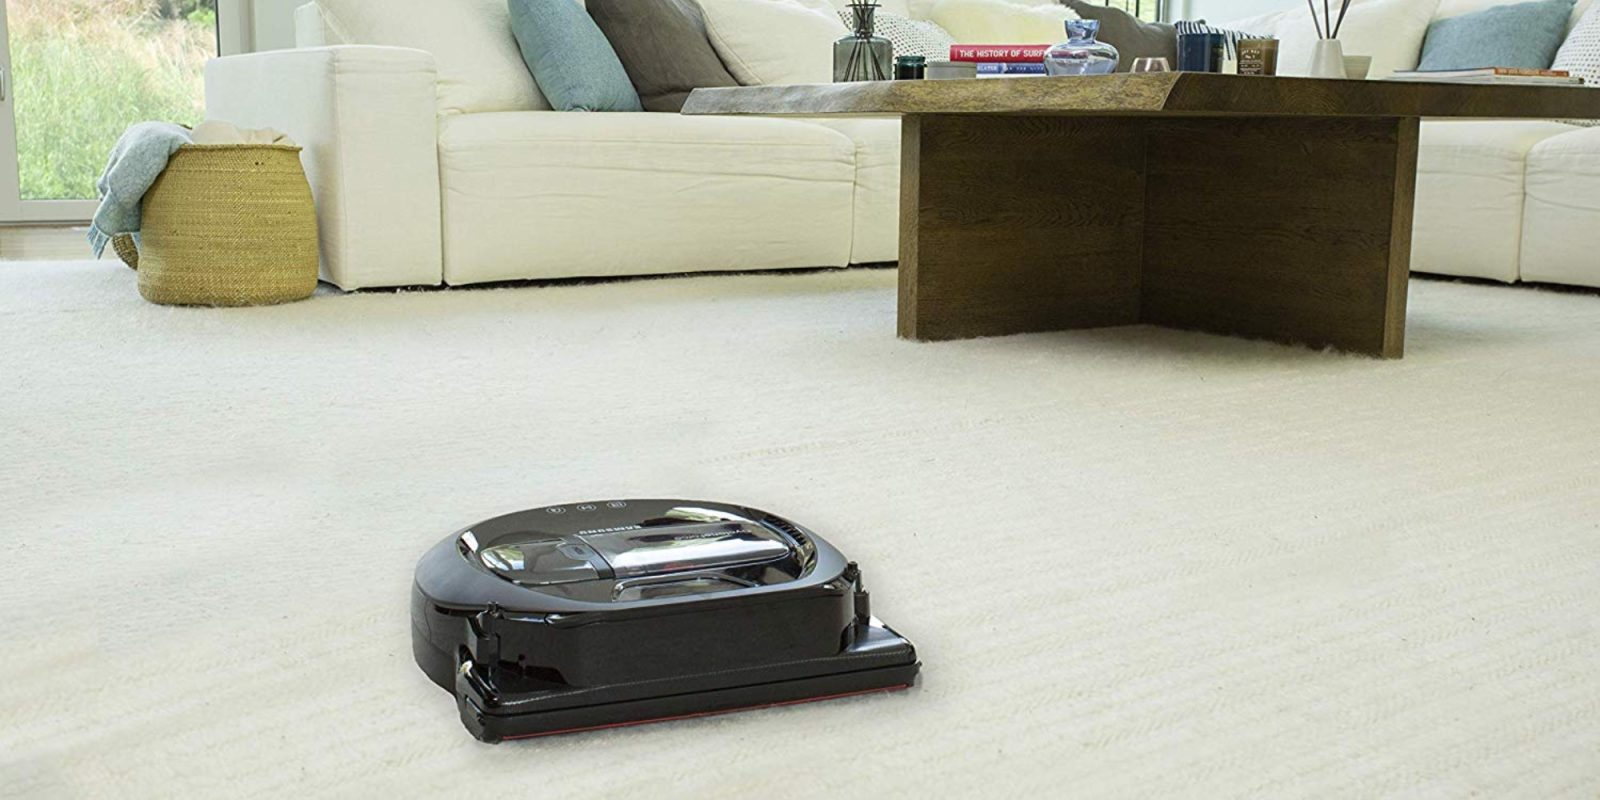 Visionary Mapping headlines Samsung's $450 POWERbot Robot Vacuum ($150 off)